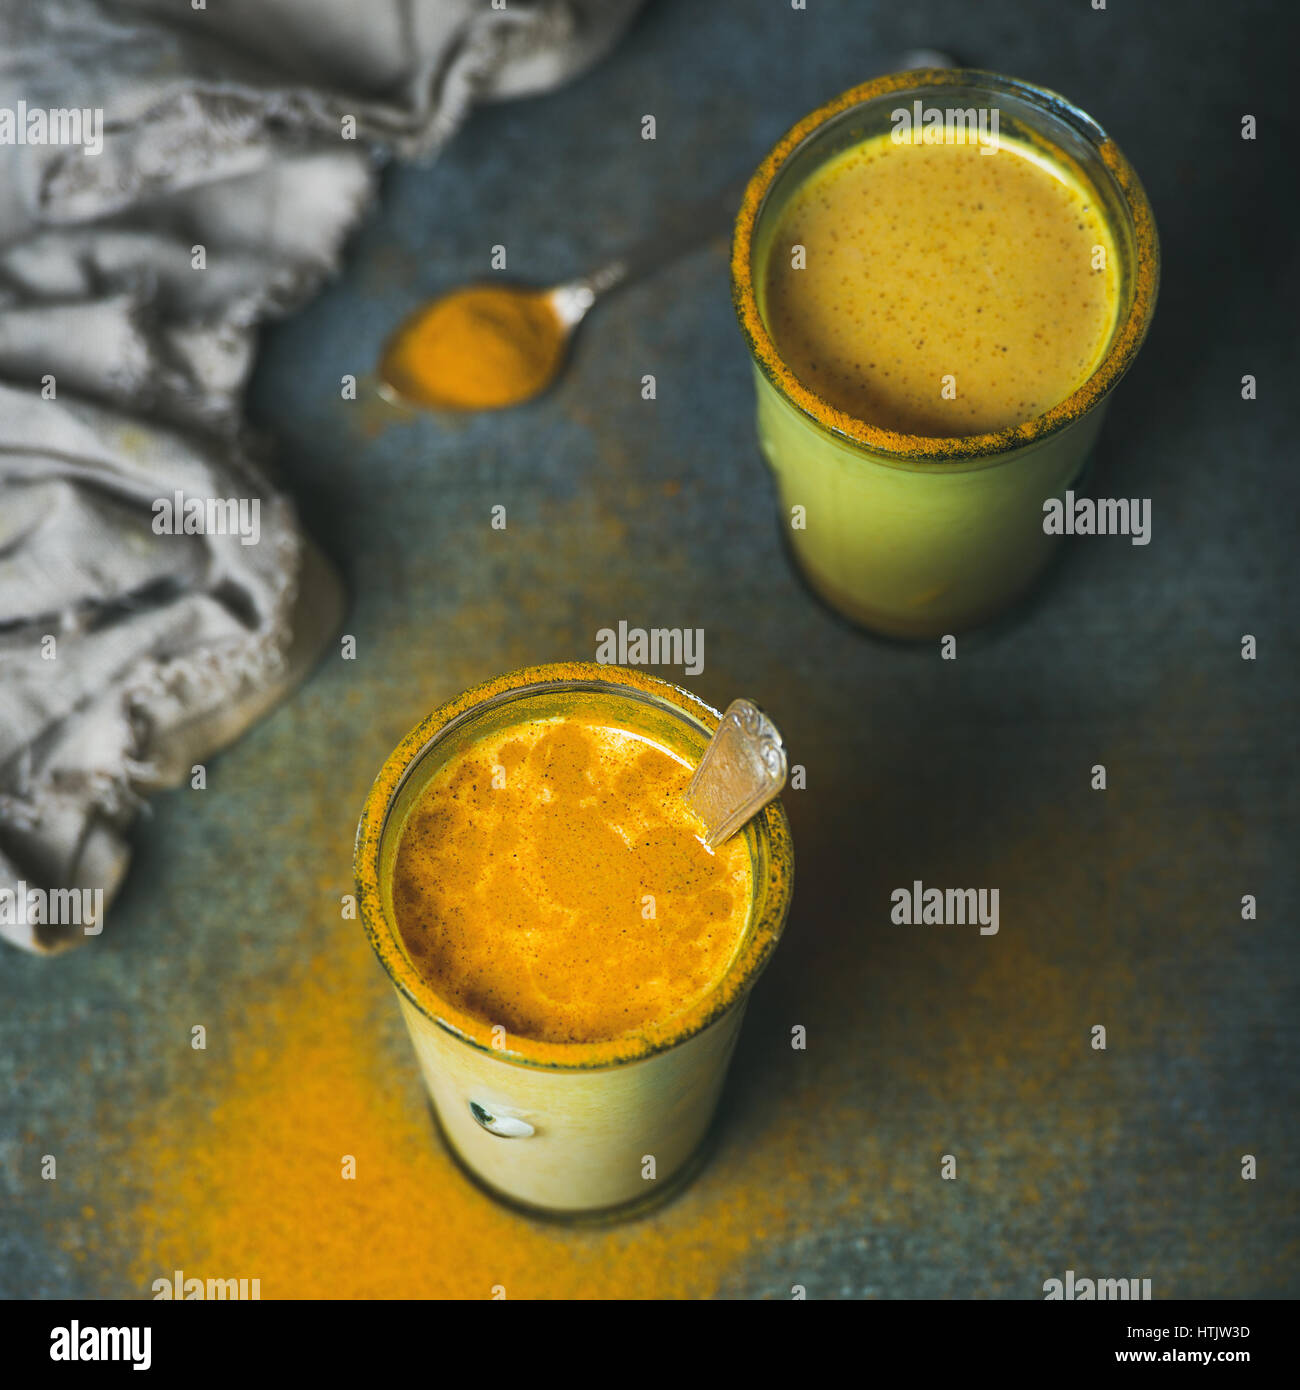 Golden milk with turmeric powder, dieting and weight loss concept - Stock Image